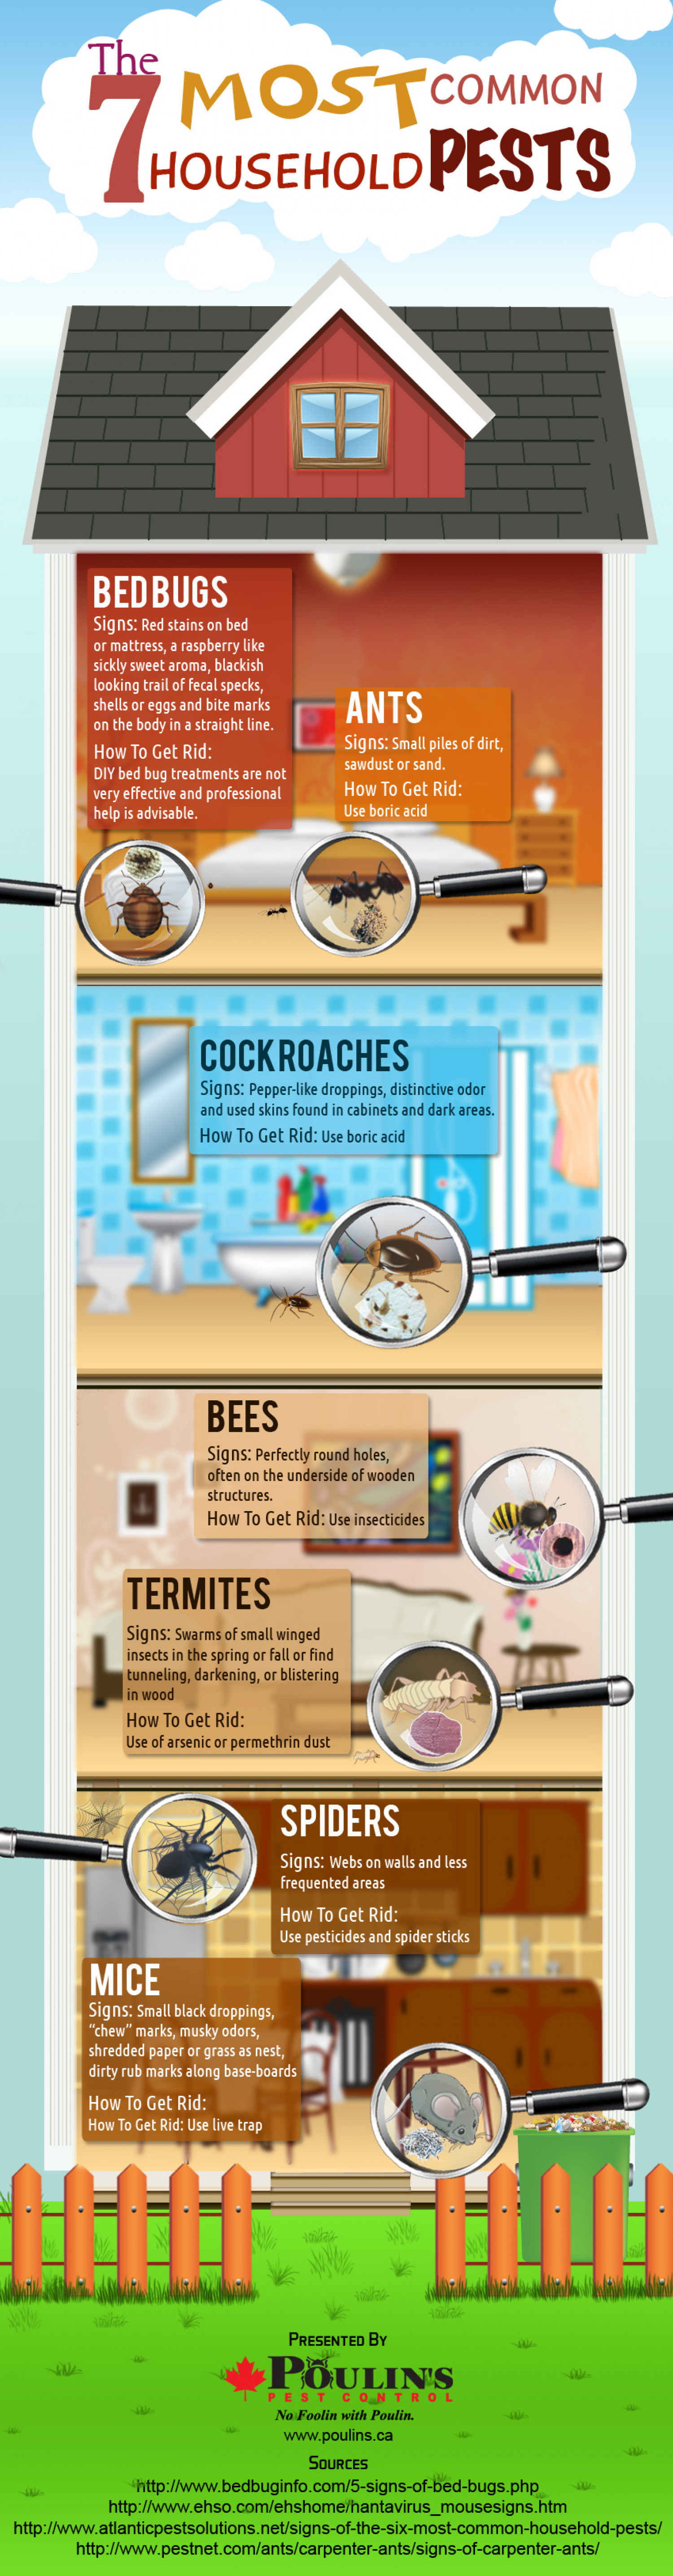 The 7 Most Common Household Pests Infographic